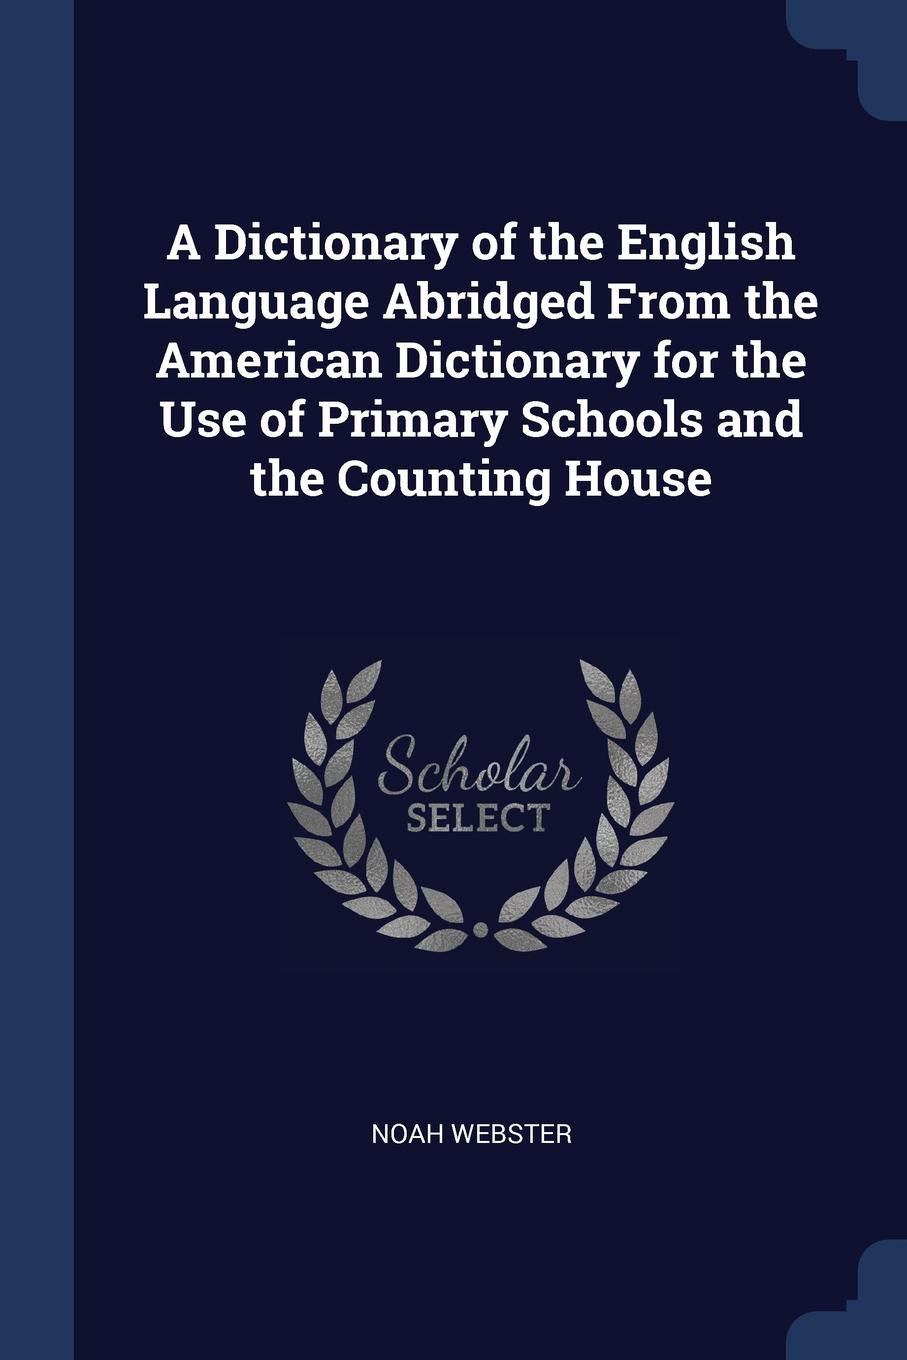 Noah Webster A Dictionary of the English Language Abridged From American for Use Primary Schools and Counting House